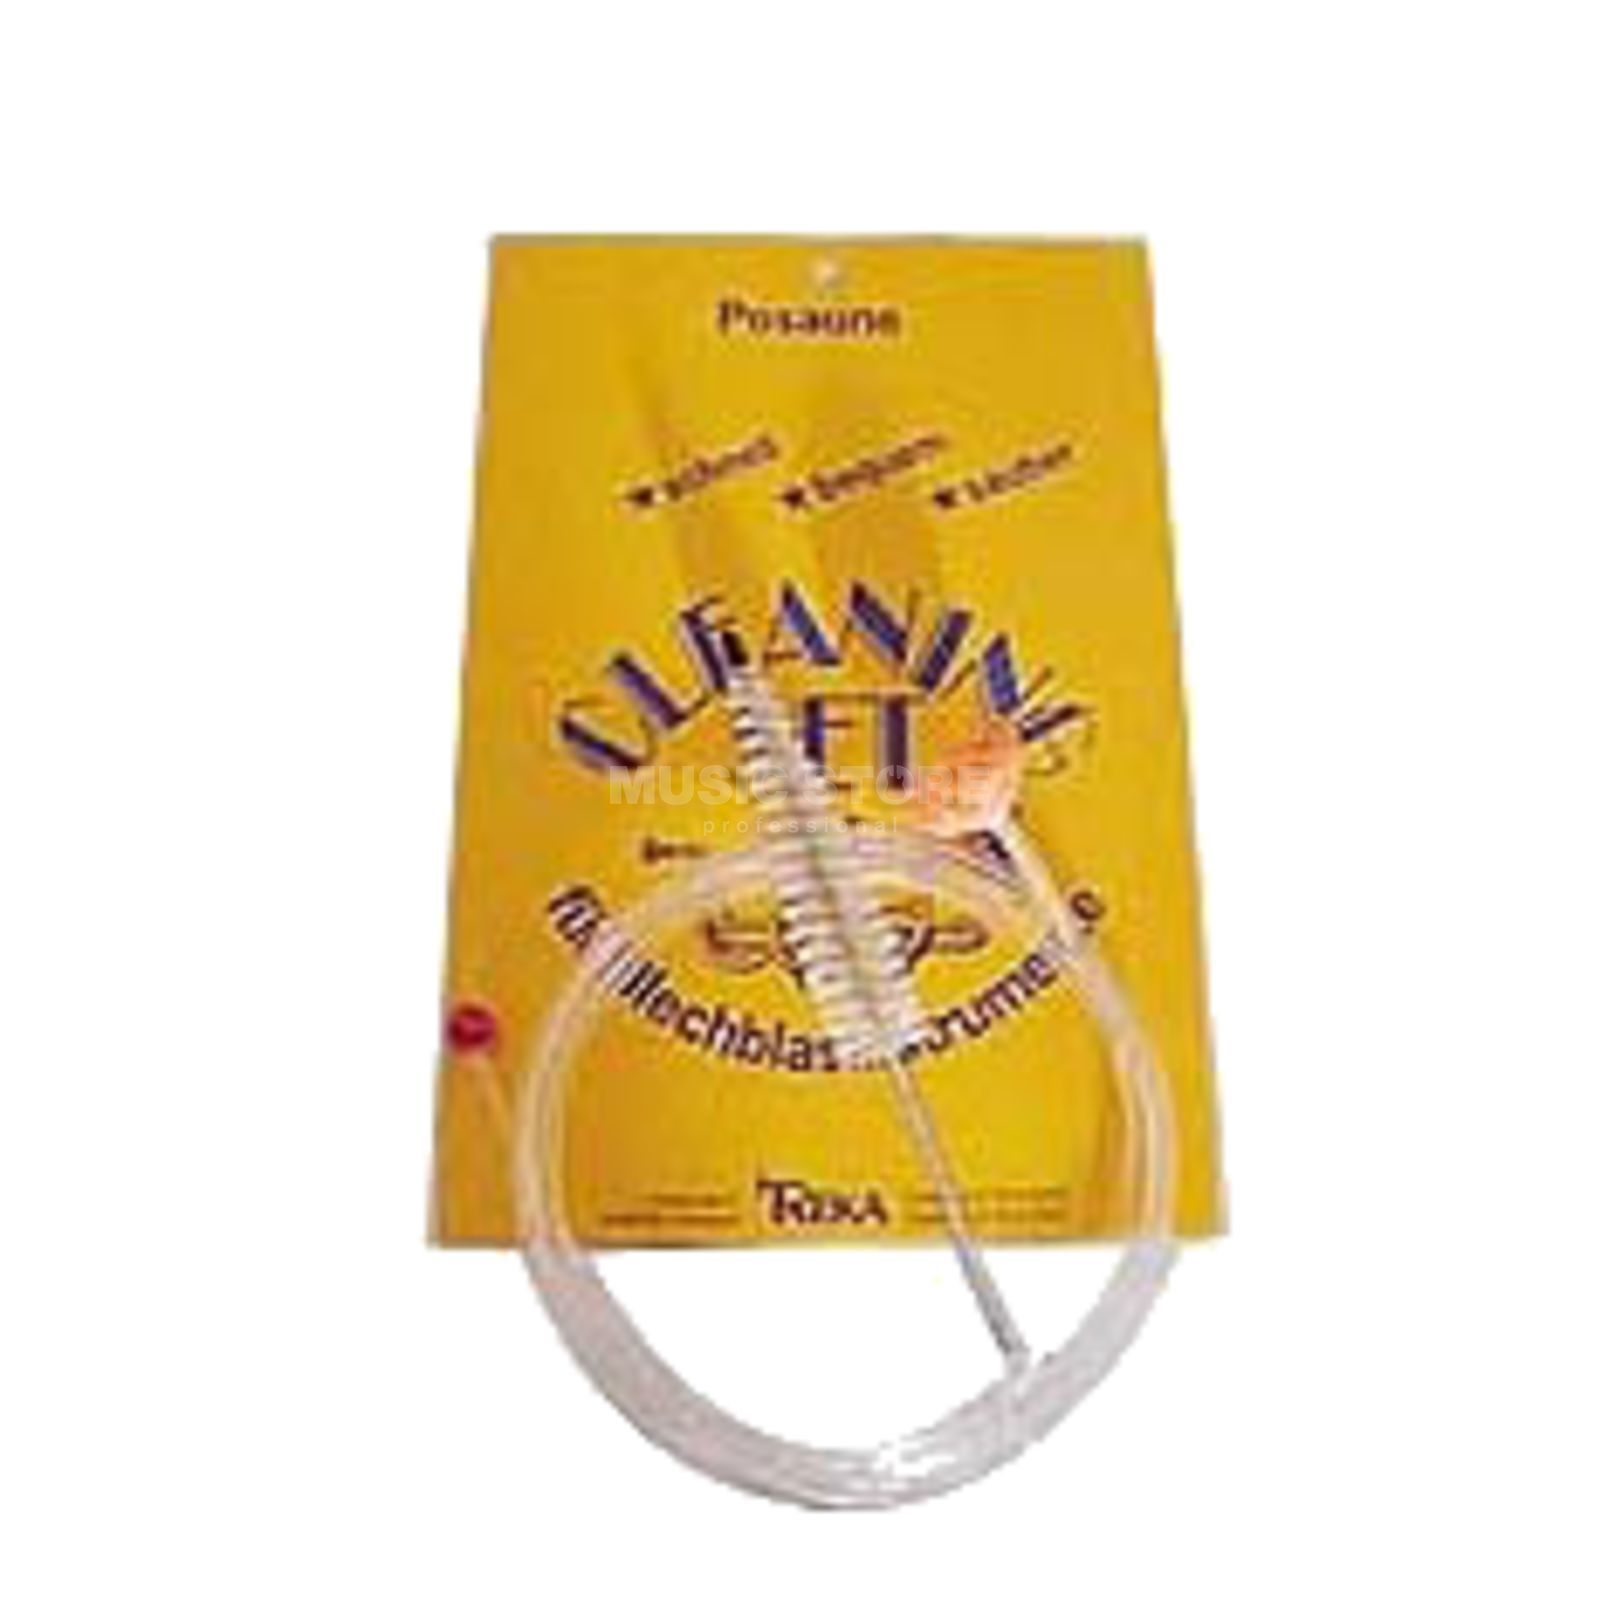 REKA Cleaning Set for Trombone Image du produit